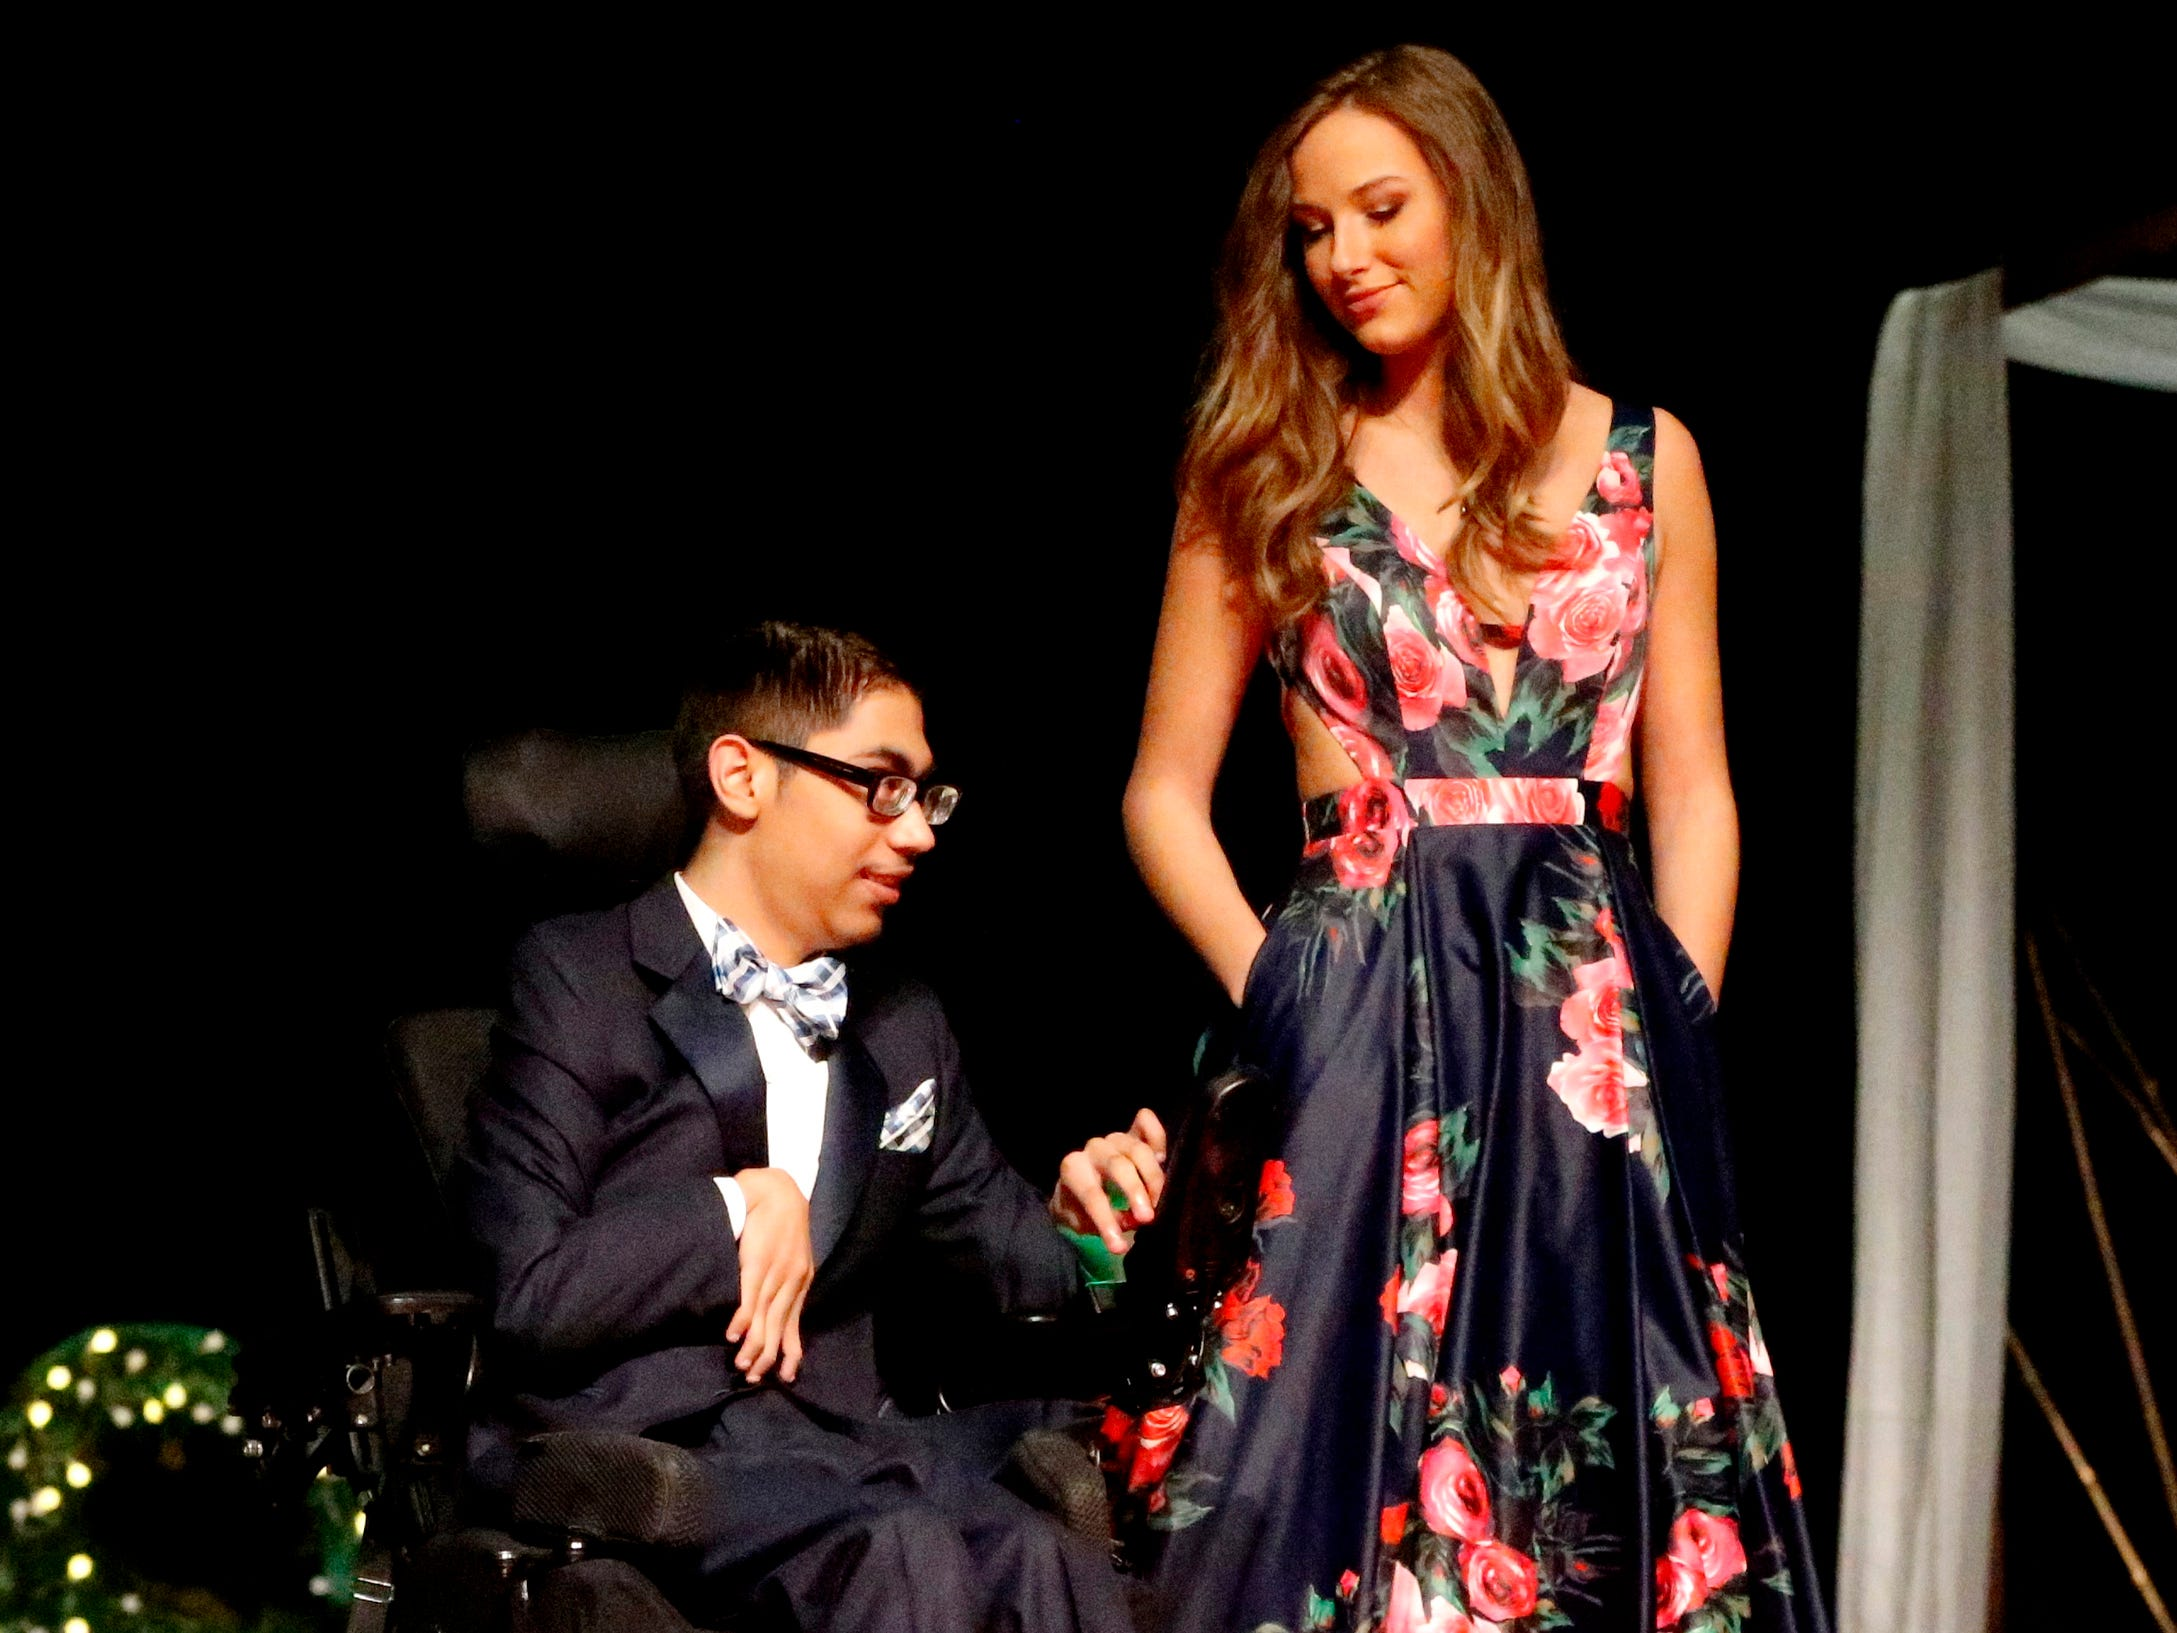 Jason Guerro, left and Ellie Hooper right show off the latest in prom fashions during the Siegel Prom Fashion show on Thursday, Feb. 14, 2019.